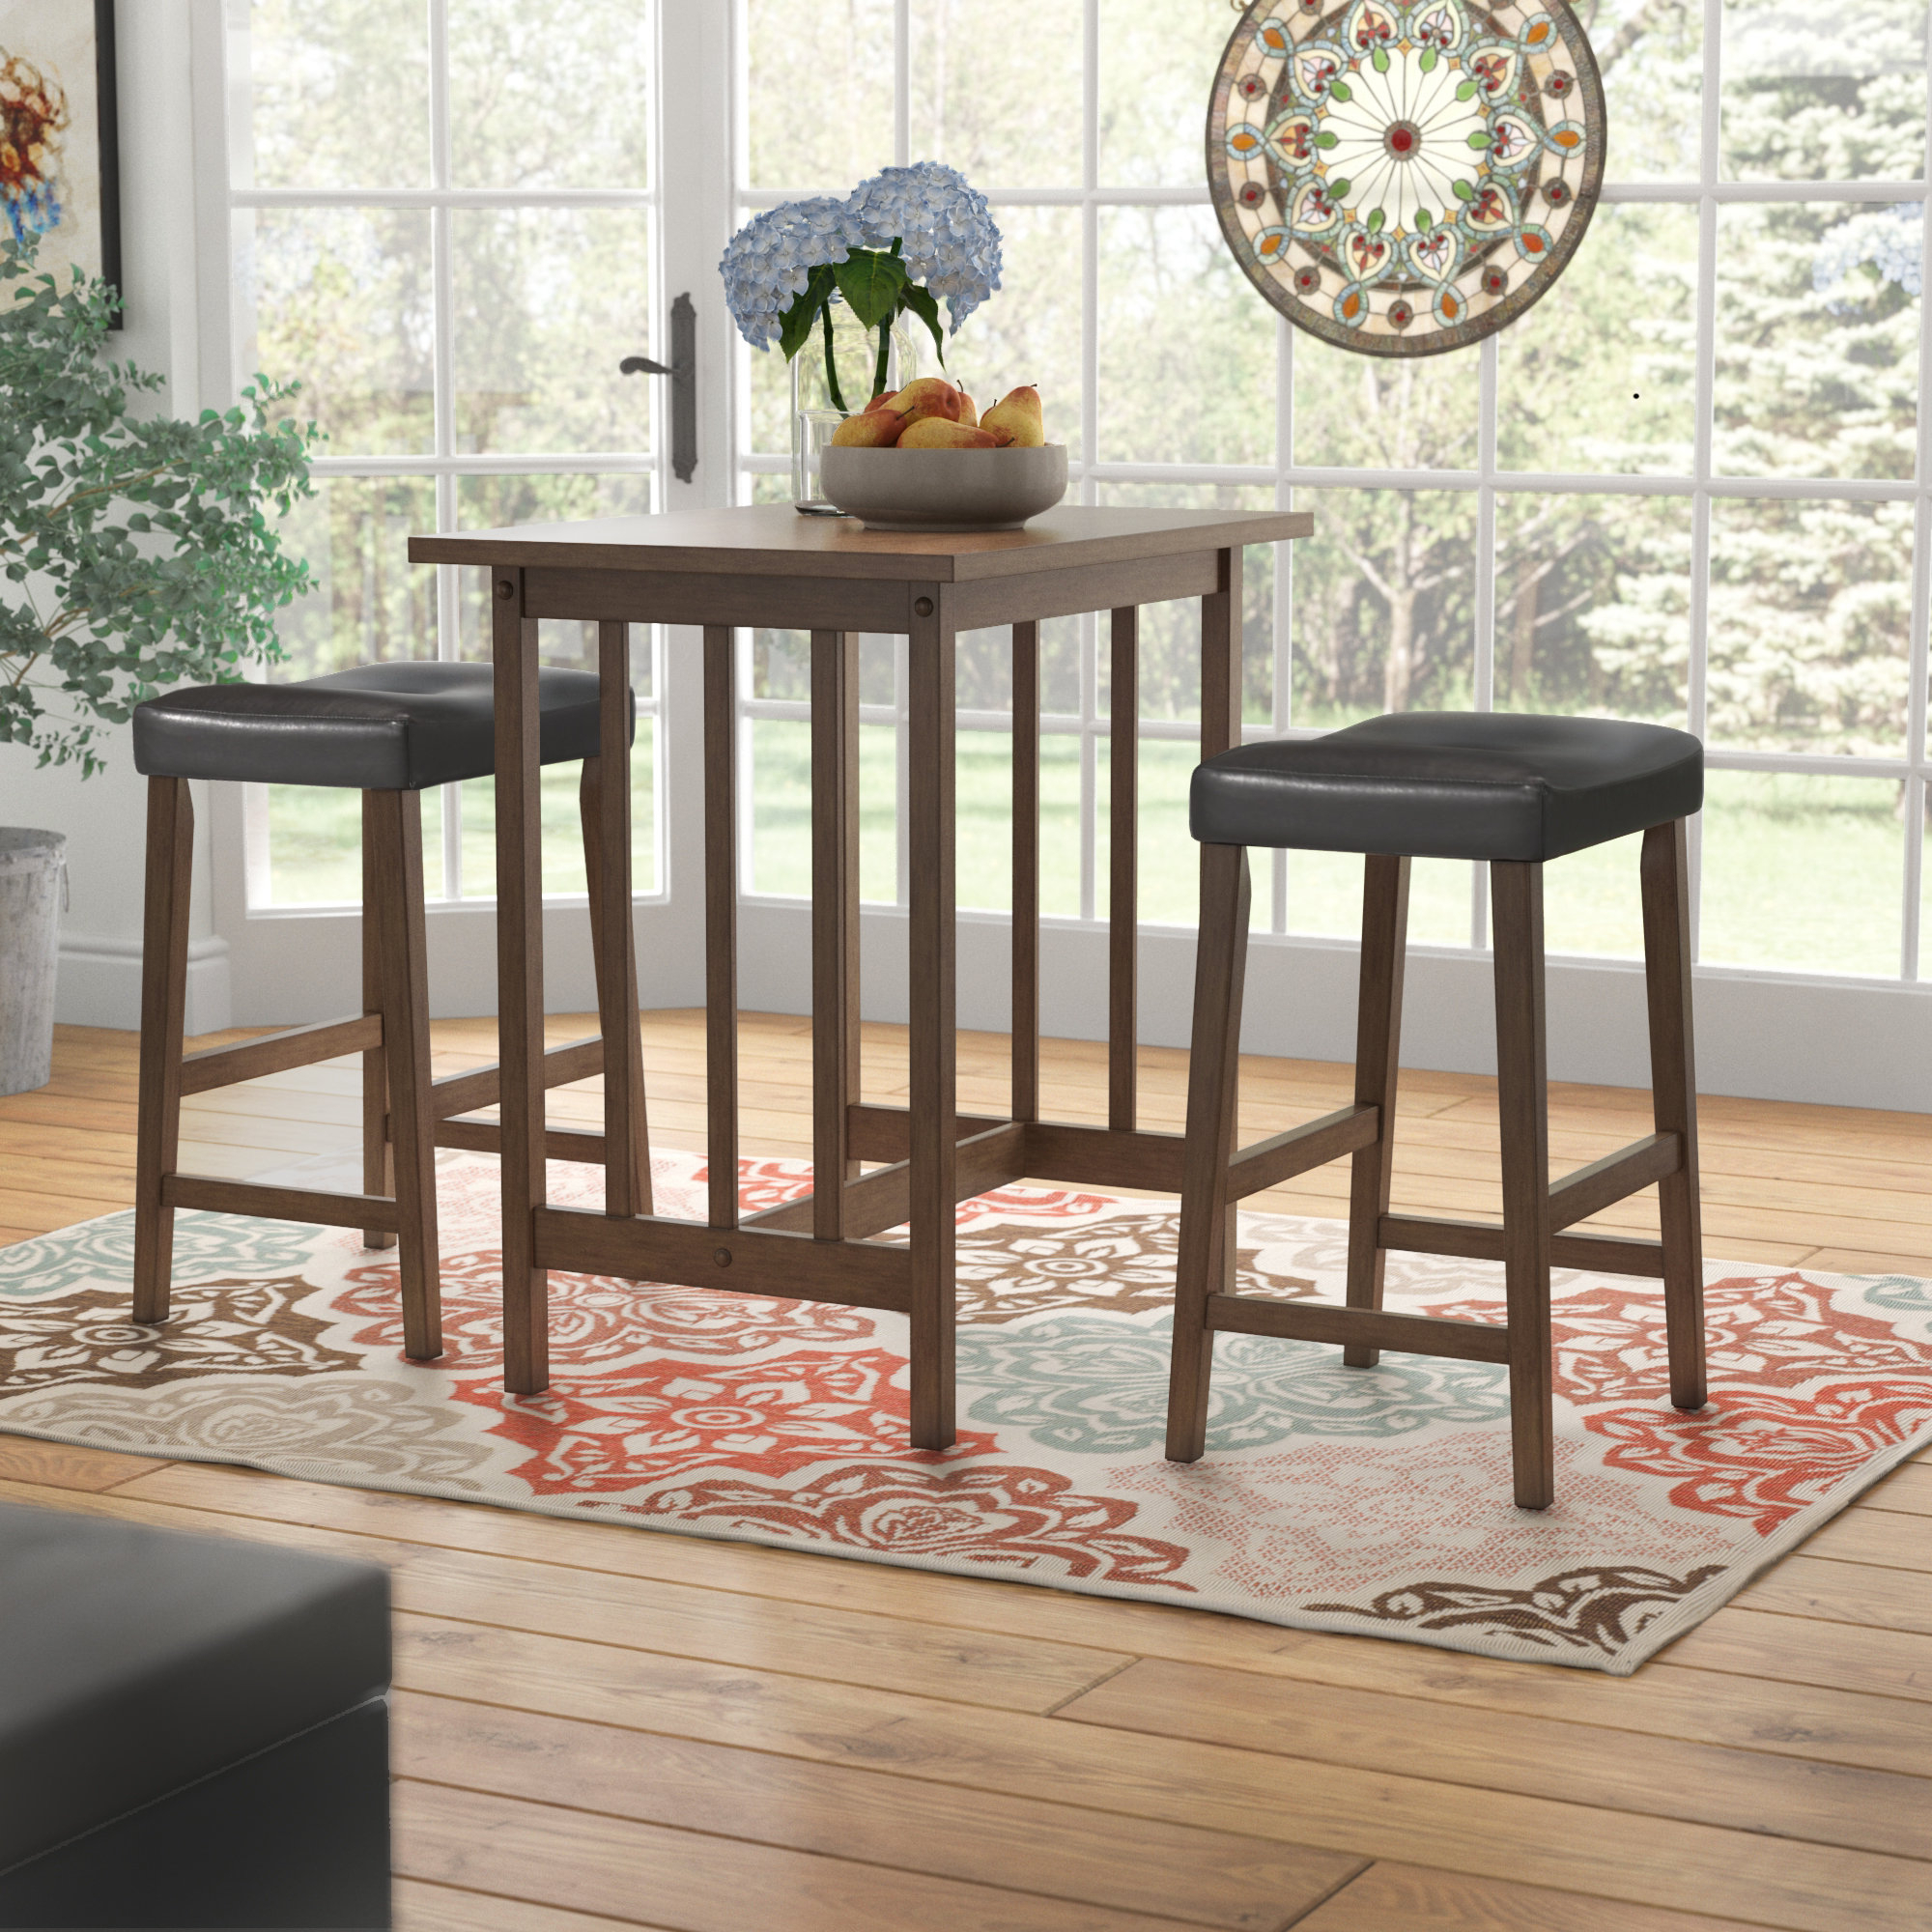 Newest Mitzel 3 Piece Dining Sets Inside Red Barrel Studio Hood Canal 3 Piece Dining Set & Reviews (View 12 of 25)